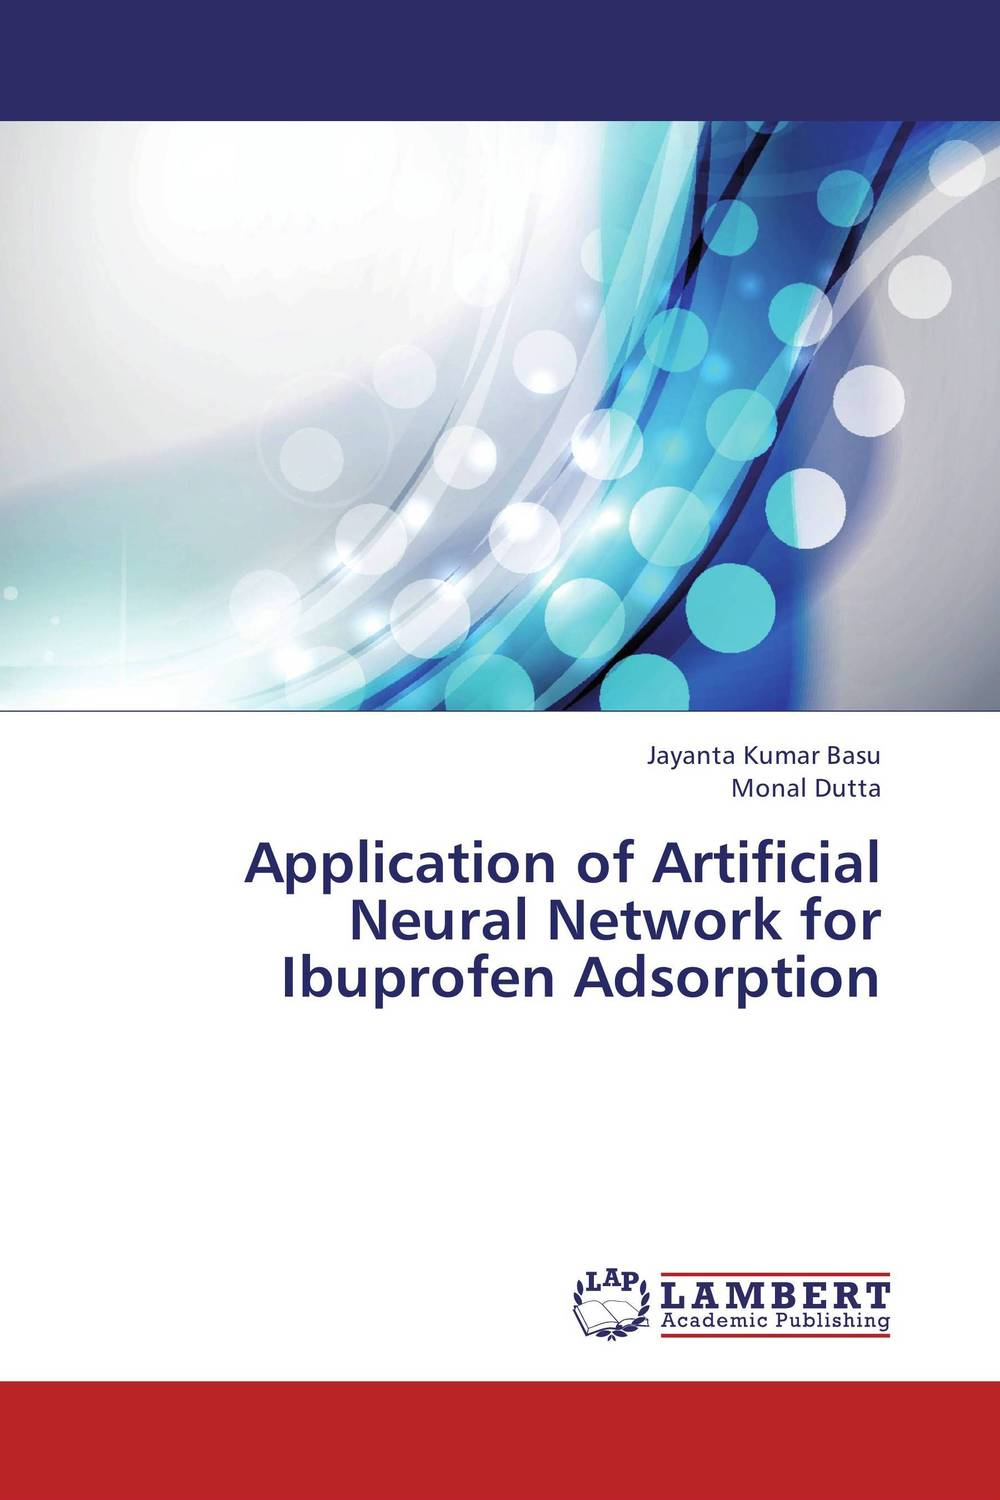 Application of Artificial Neural Network for Ibuprofen Adsorption software effort estimation using artificial neural networks